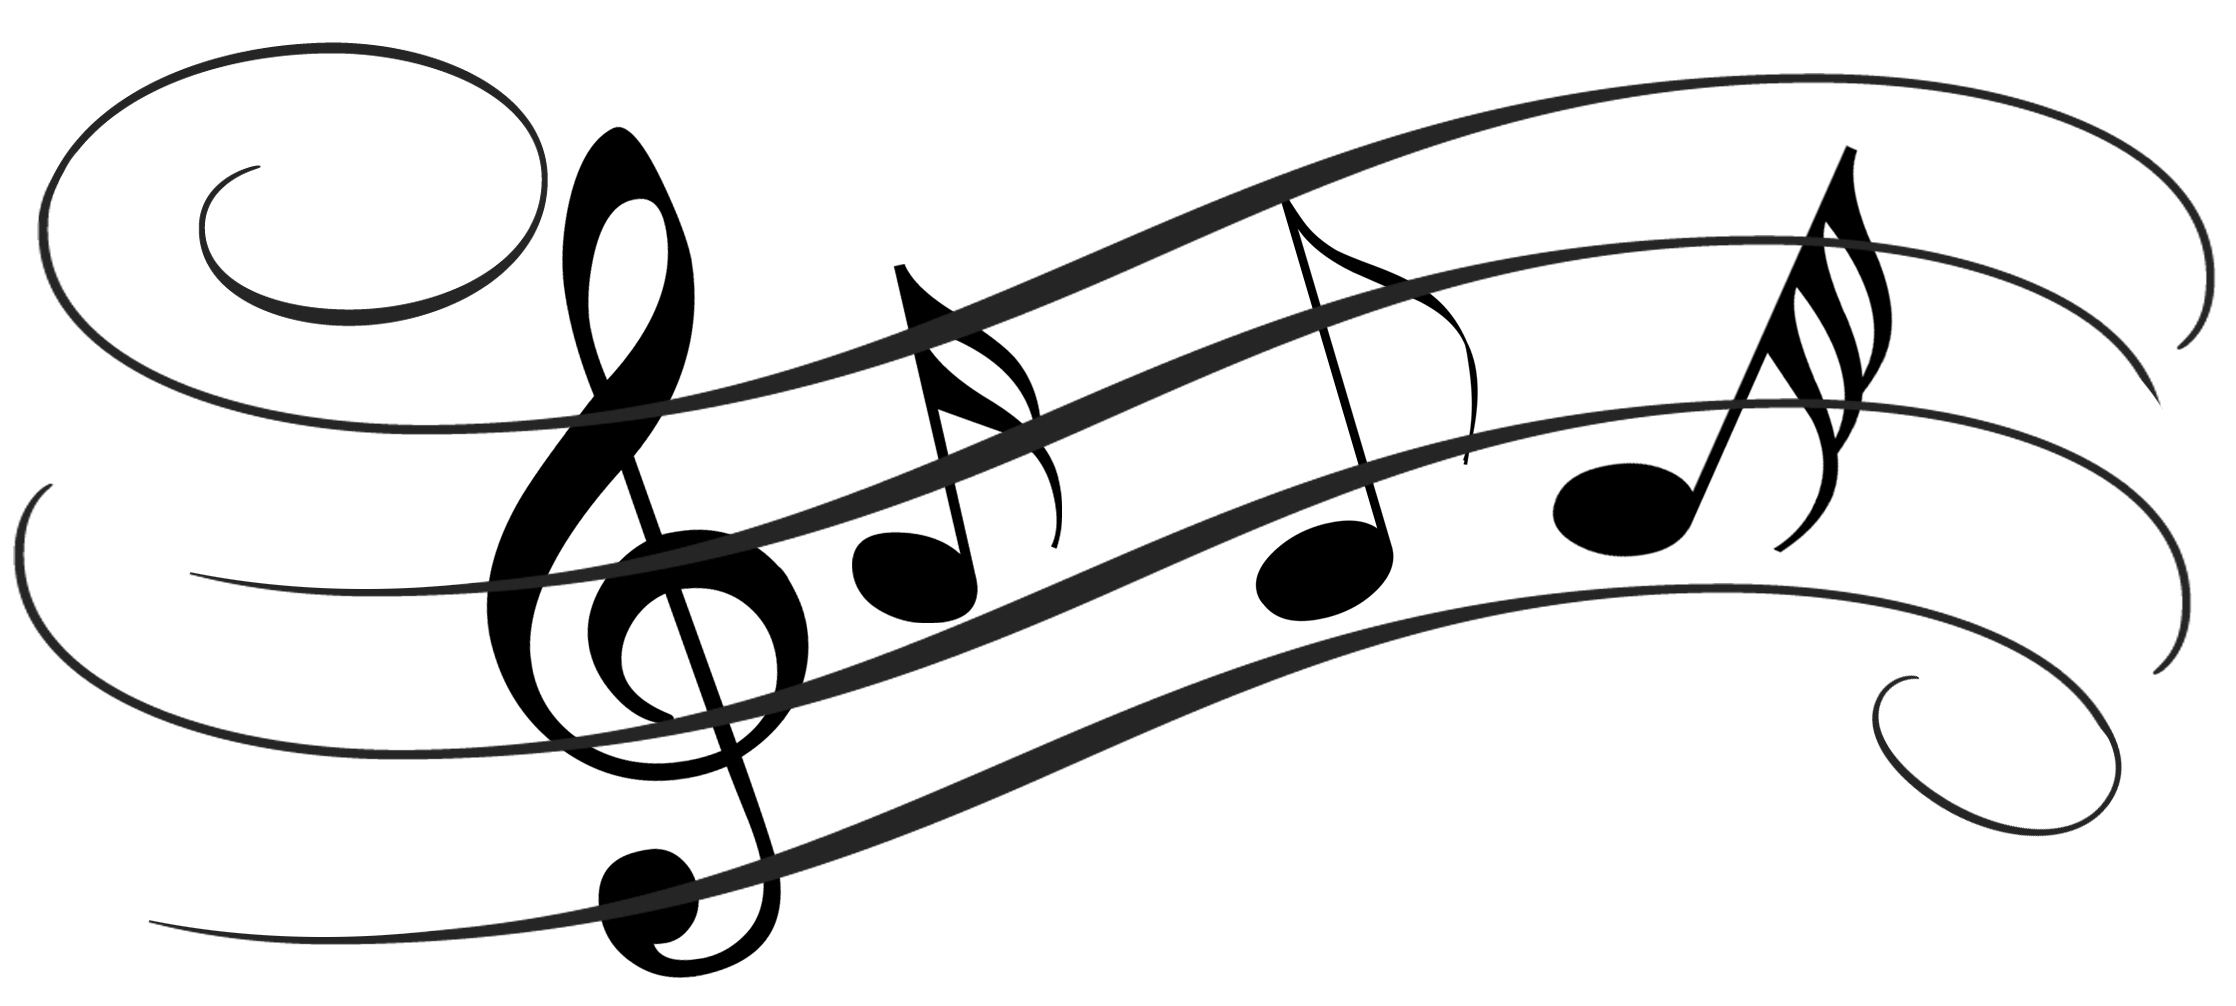 Music Clipart Music Clip Art Image.